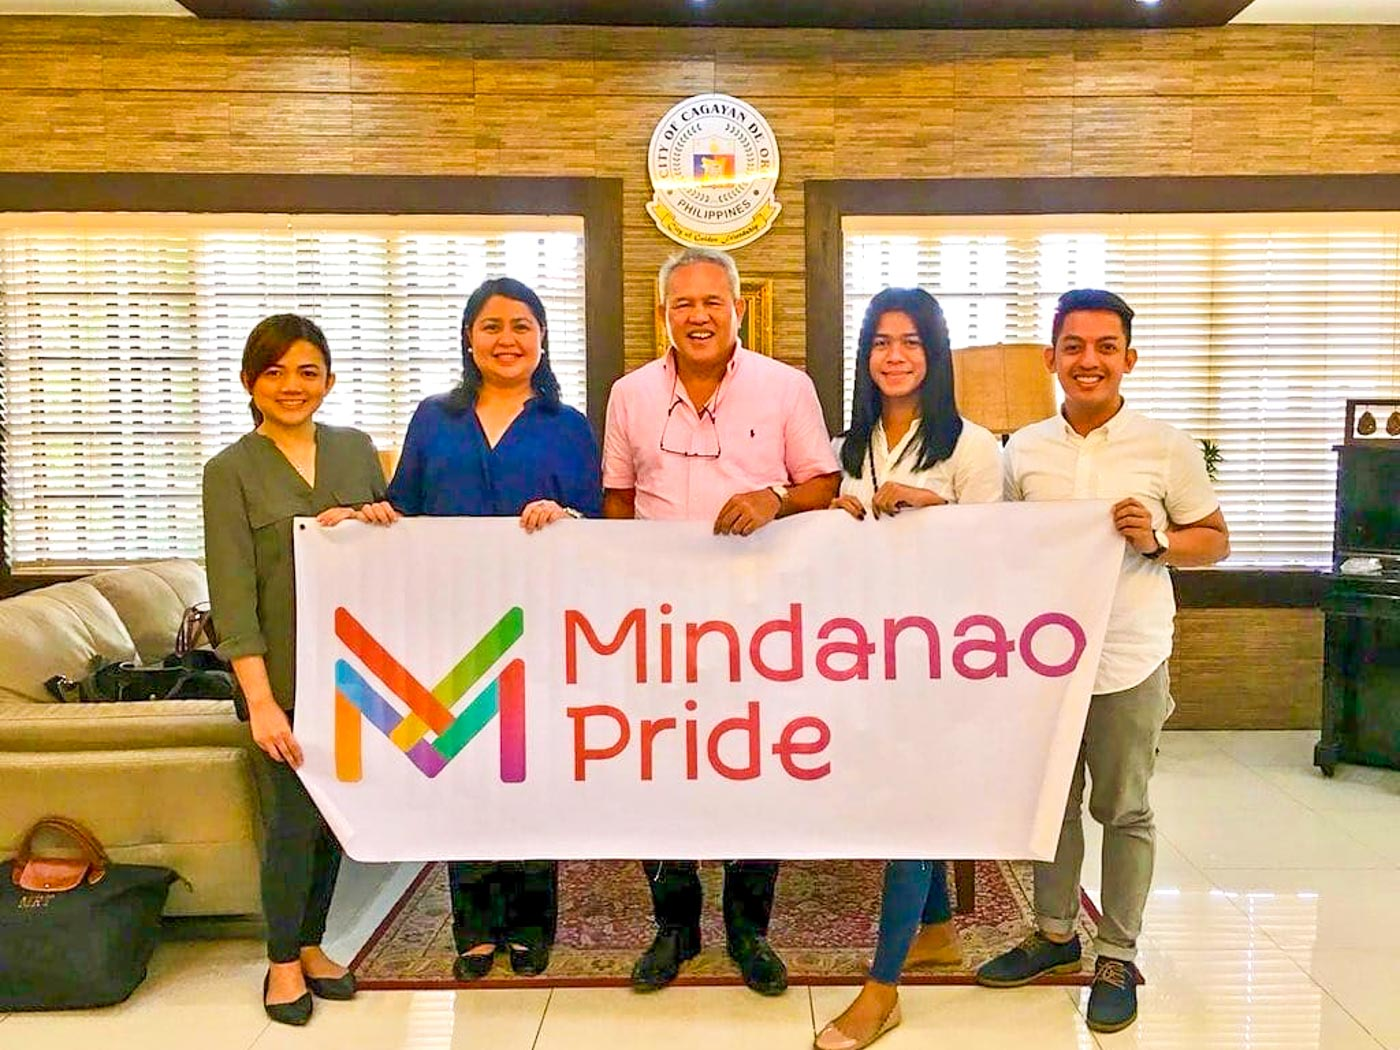 LOBBYING FOR RIGHTS - SPARK, Inc. representatives (left) accompany Mindanao Pride members (right) during a courtesy call with Cagayan de Oro City Mayor Oscar Moreno (center) this May. One of Mindanao Pride's objectives is to discuss with local government units about anti-discrimination ordinances and to implement them within their localities.